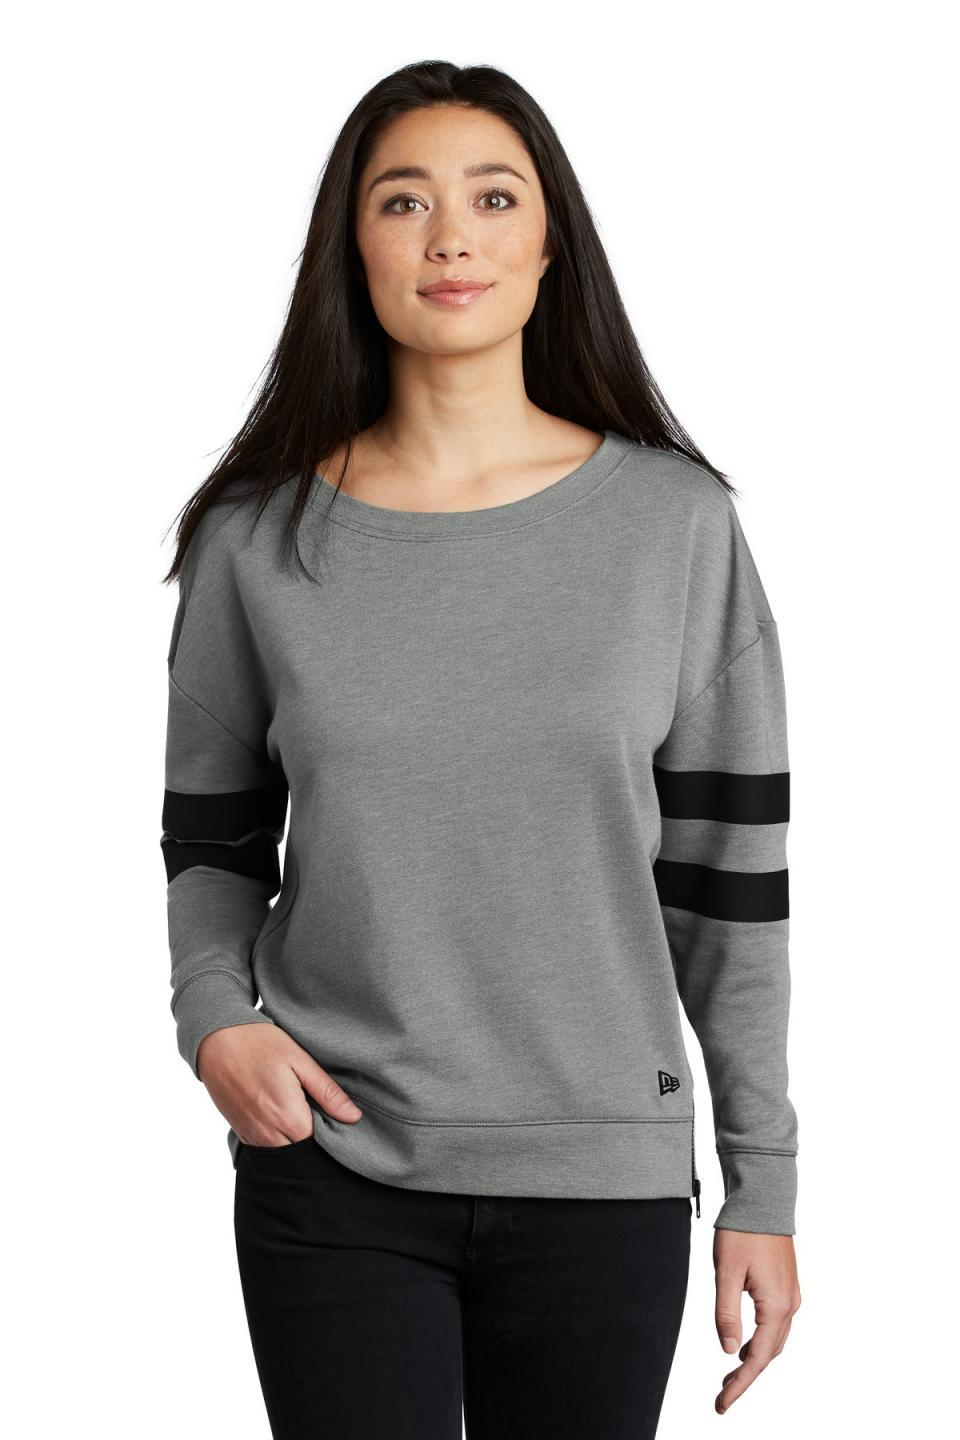 New Era Women's Tri-Blend Fleece Varsity Crew